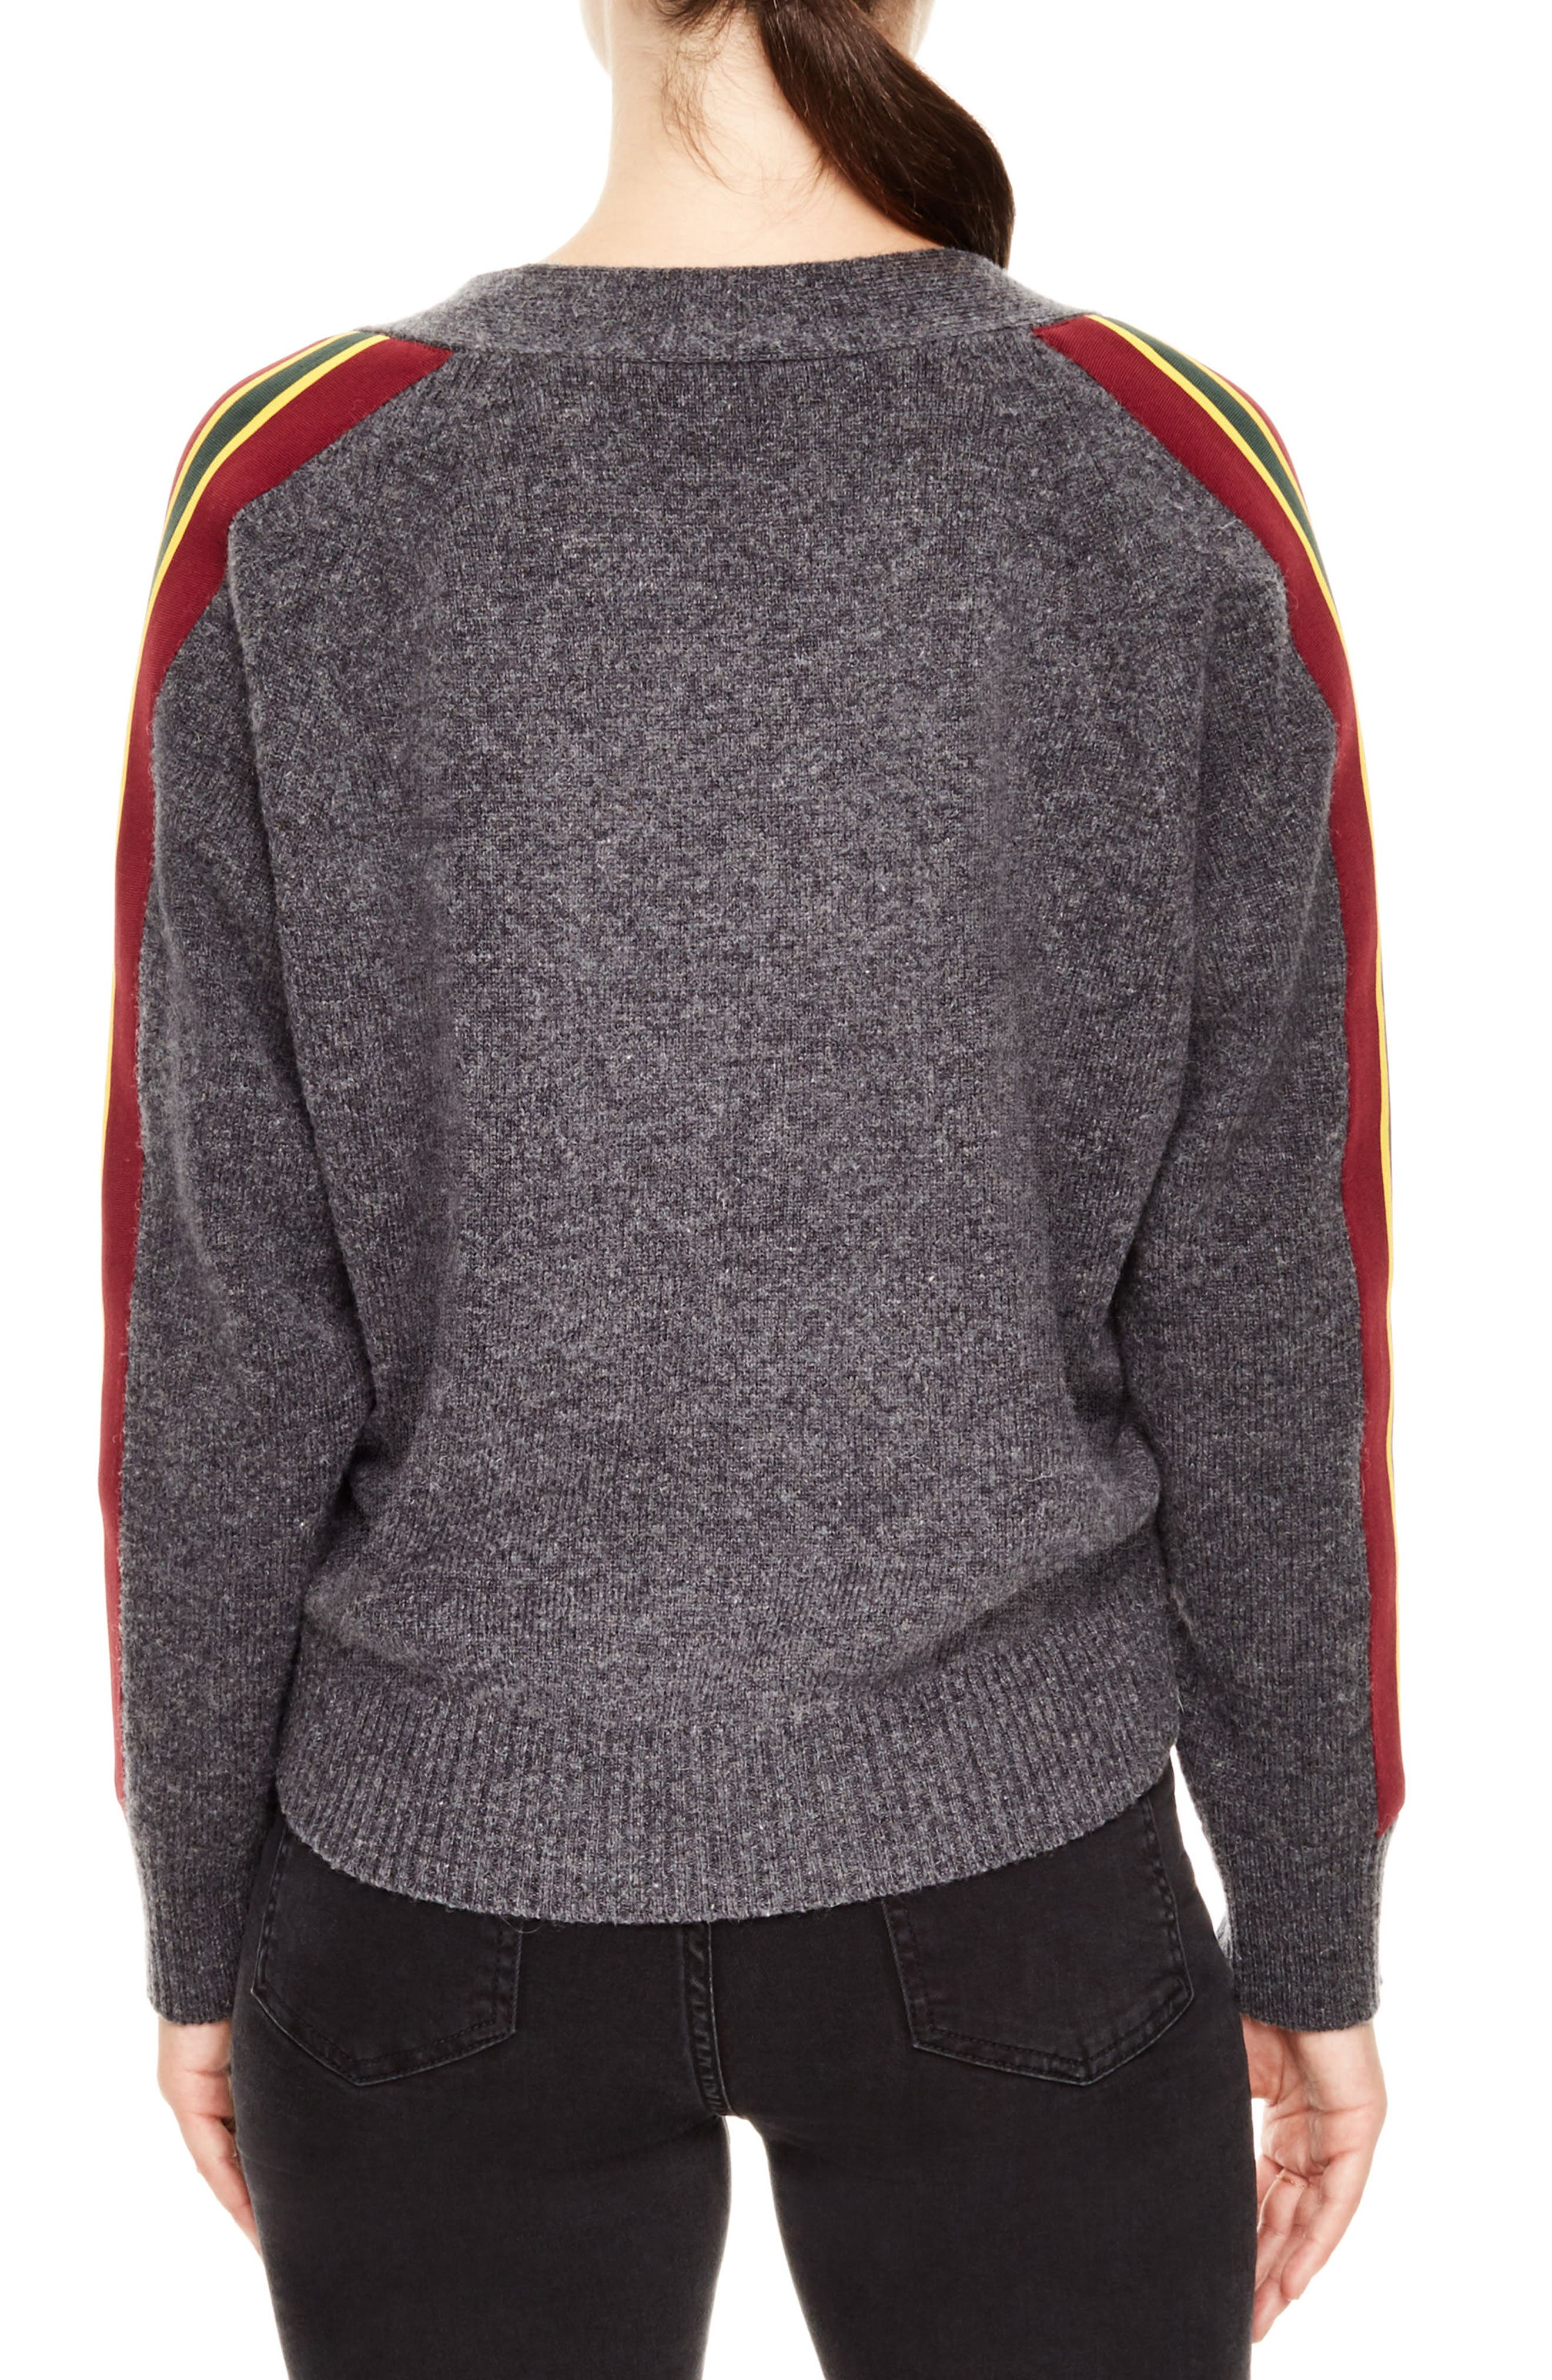 Artic Wool Blend Sweater,                             Alternate thumbnail 2, color,                             051